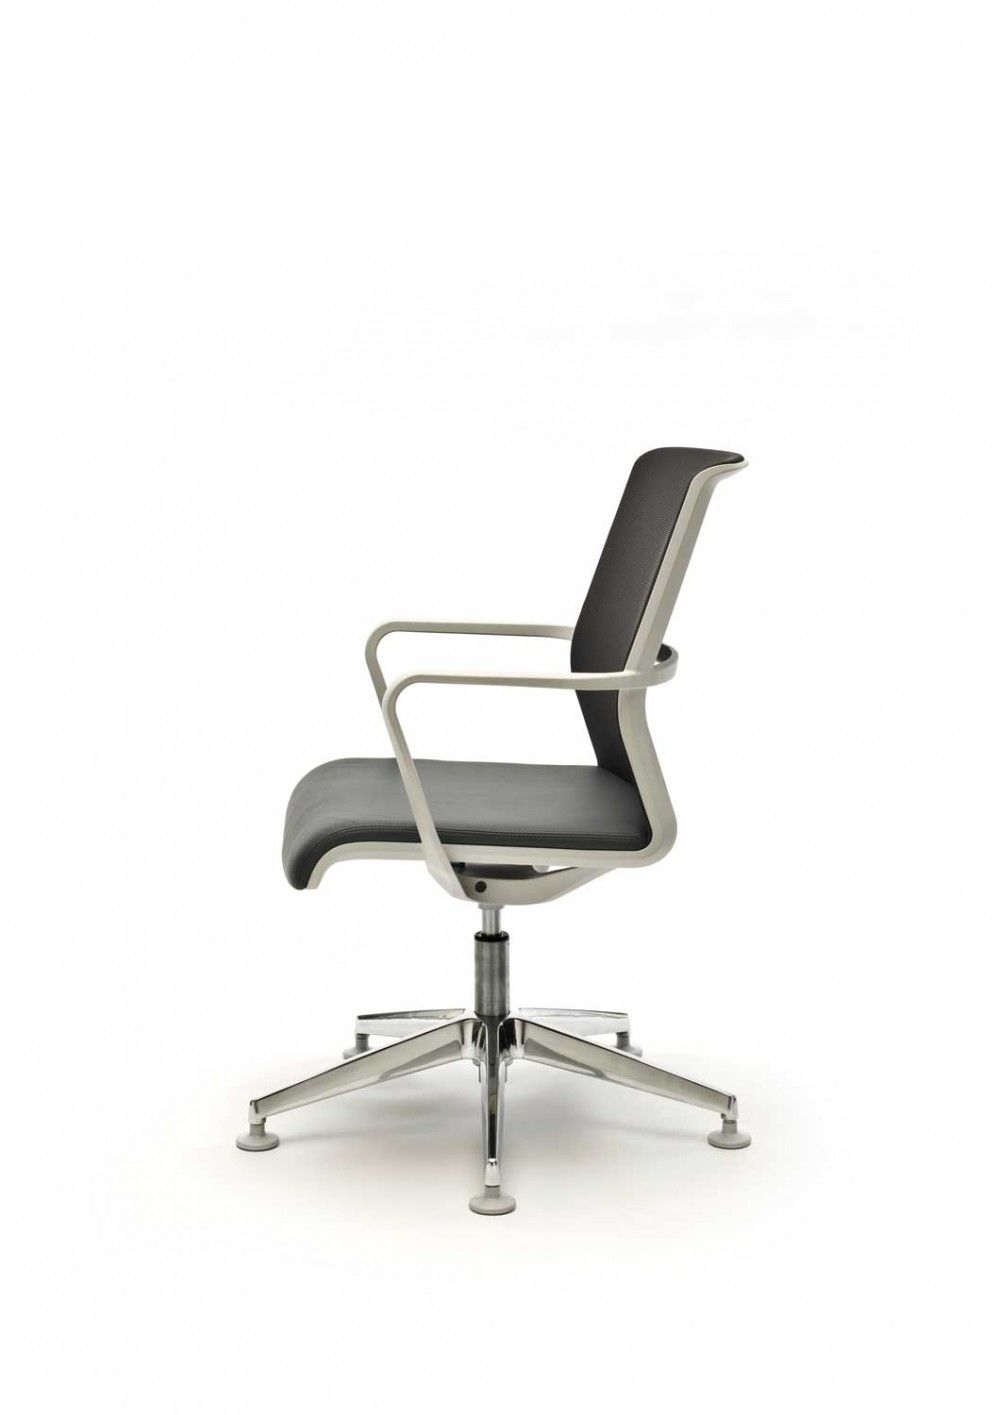 Designer Conference Chair